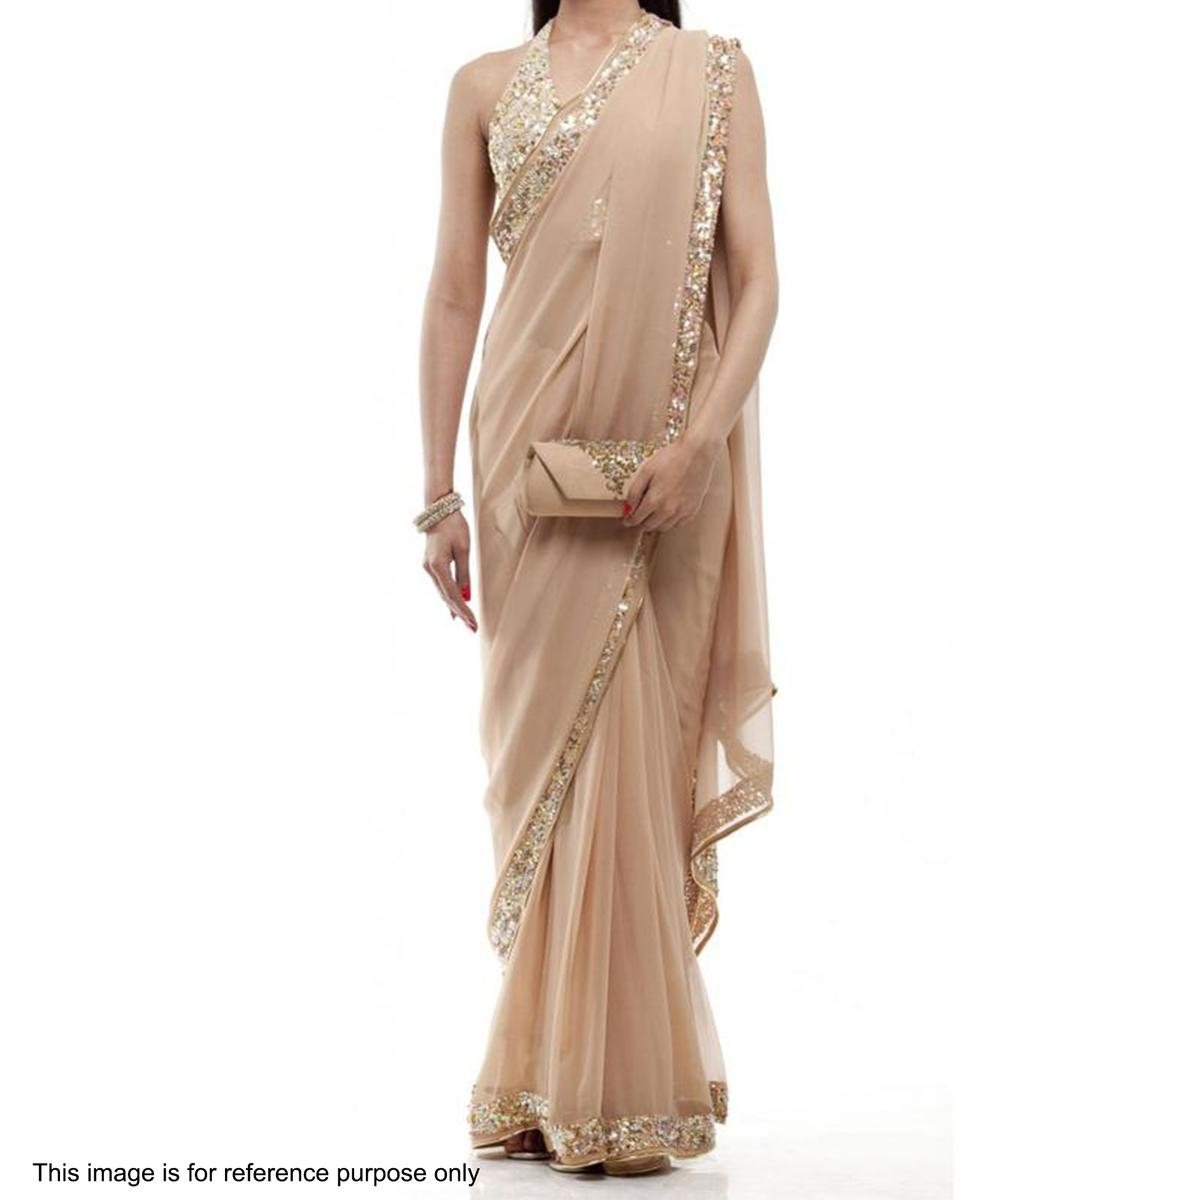 Champagne Color Georgette Saree Online Fashion Shopping